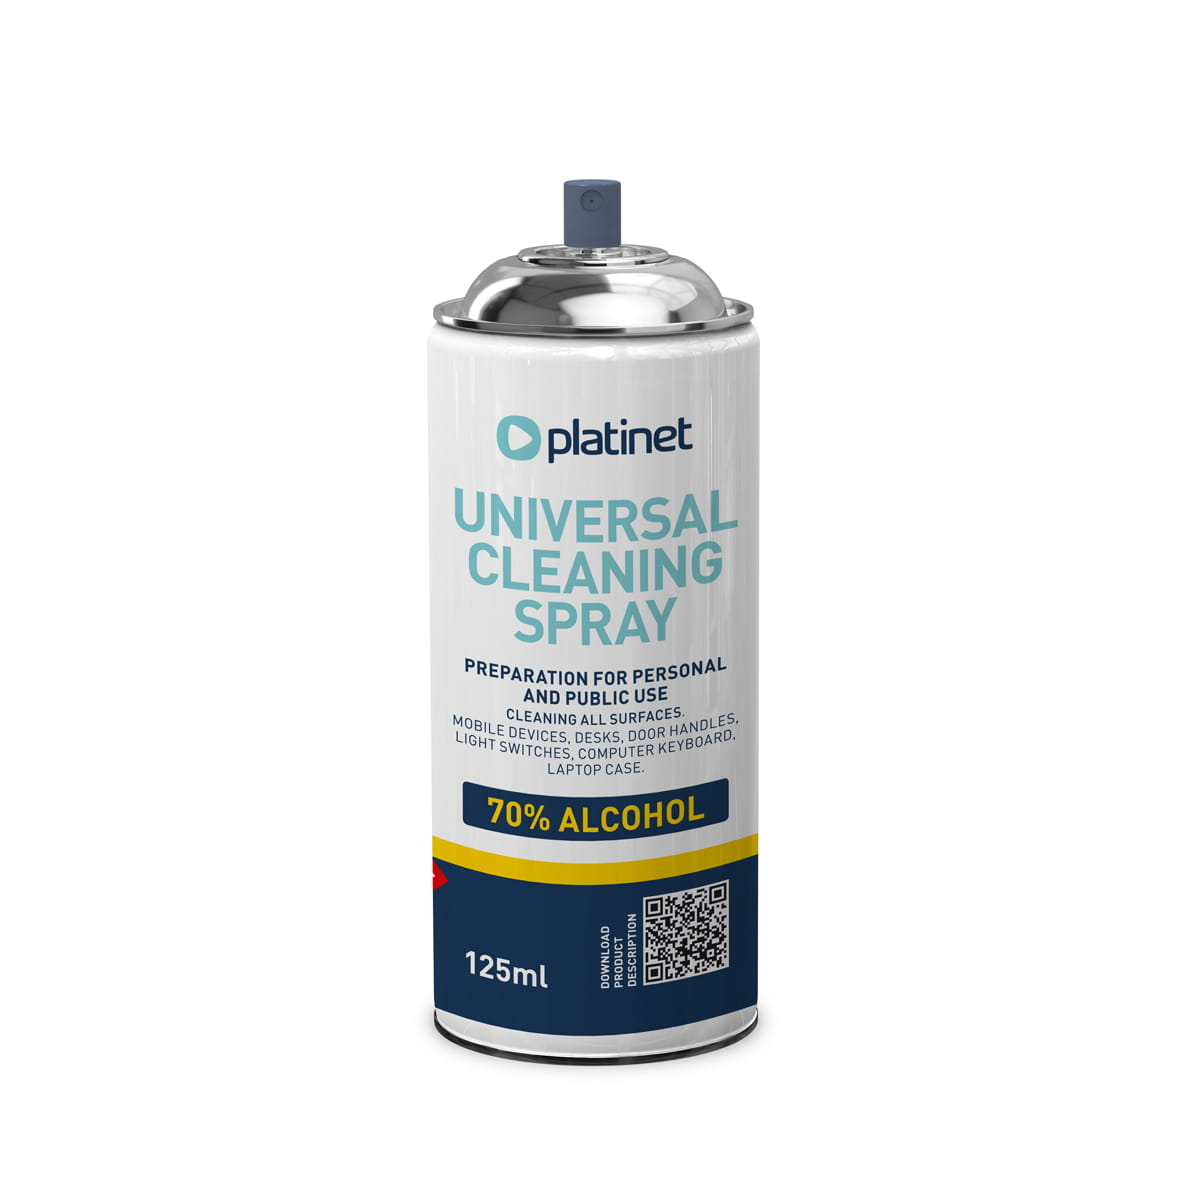 Platinet CLEANING 70% SURFACE SPRAY 125ML